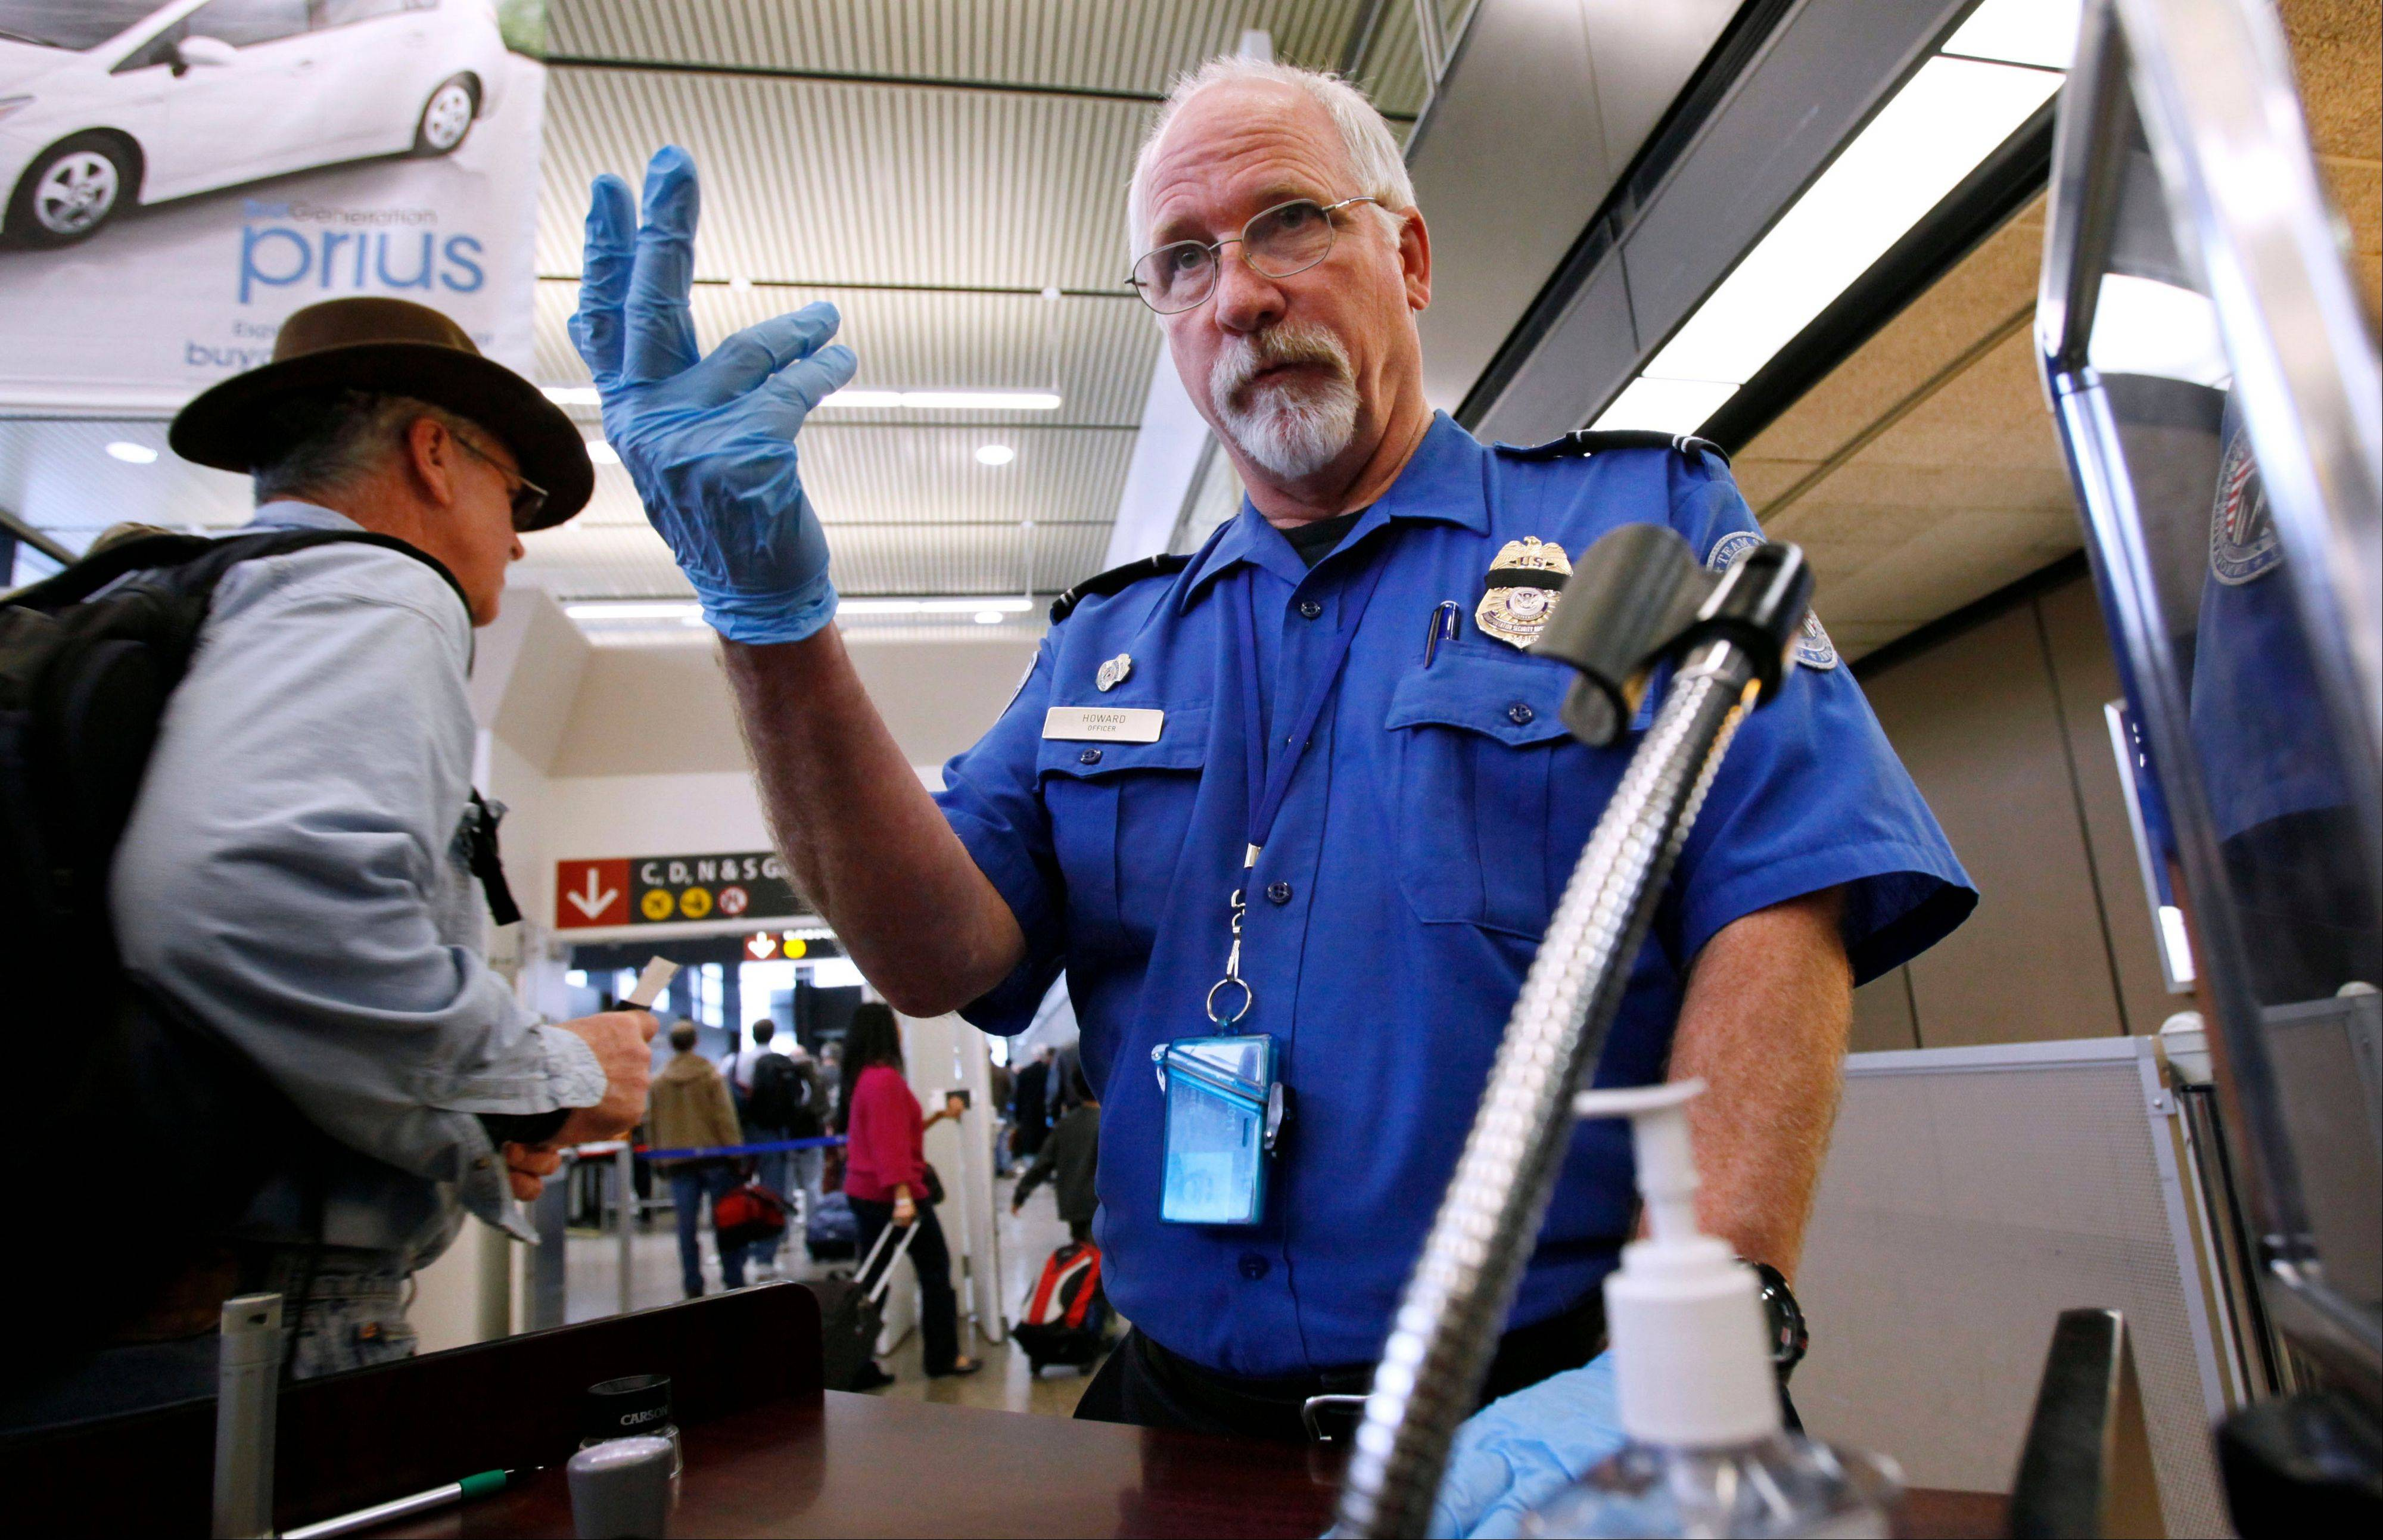 In this Jan. 4, 2010 photo, TSA officer Robert Howard signals an airline passenger forward at a security check-point at Seattle-Tacoma International Airport in SeaTac, Wash. Flight attendants, pilots, federal air marshals and even insurance companies are part of a growing backlash to the Transportation Security Administrationís new policy allowing passengers to carry small knives and sports equipment like souvenir baseball bats and golf clubs onto planes.